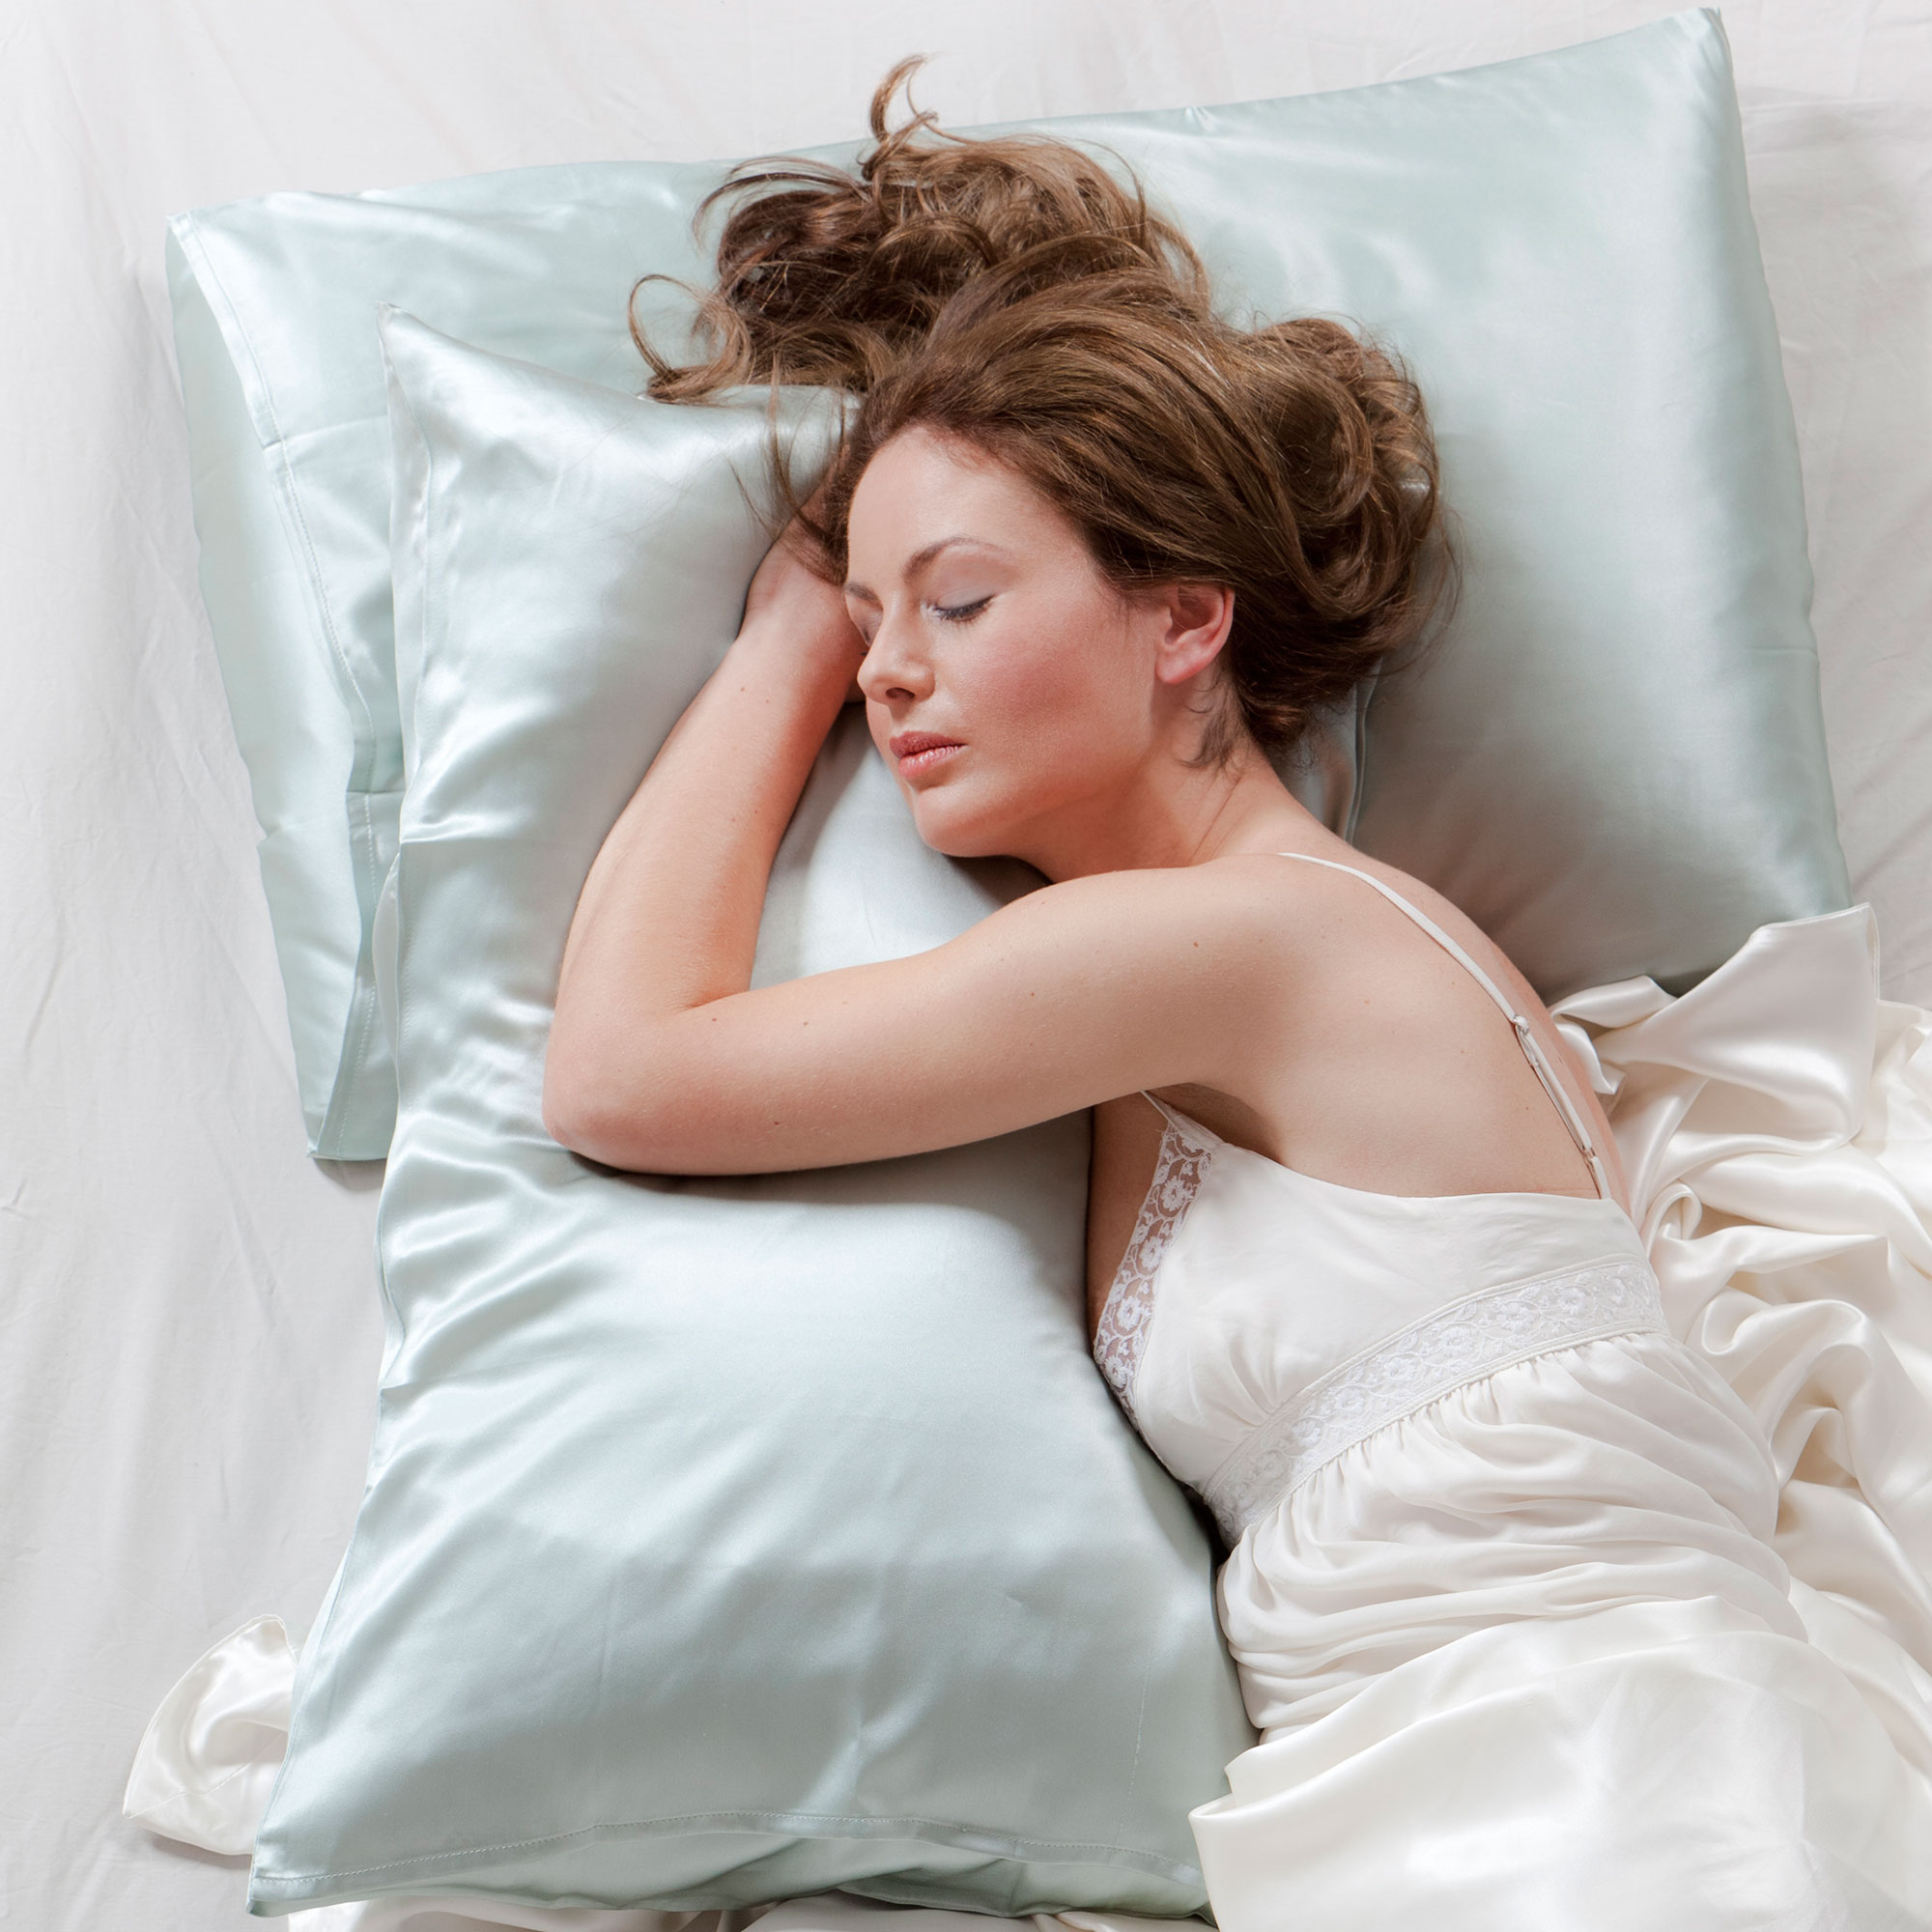 Silk pillowcases are heavily recommended